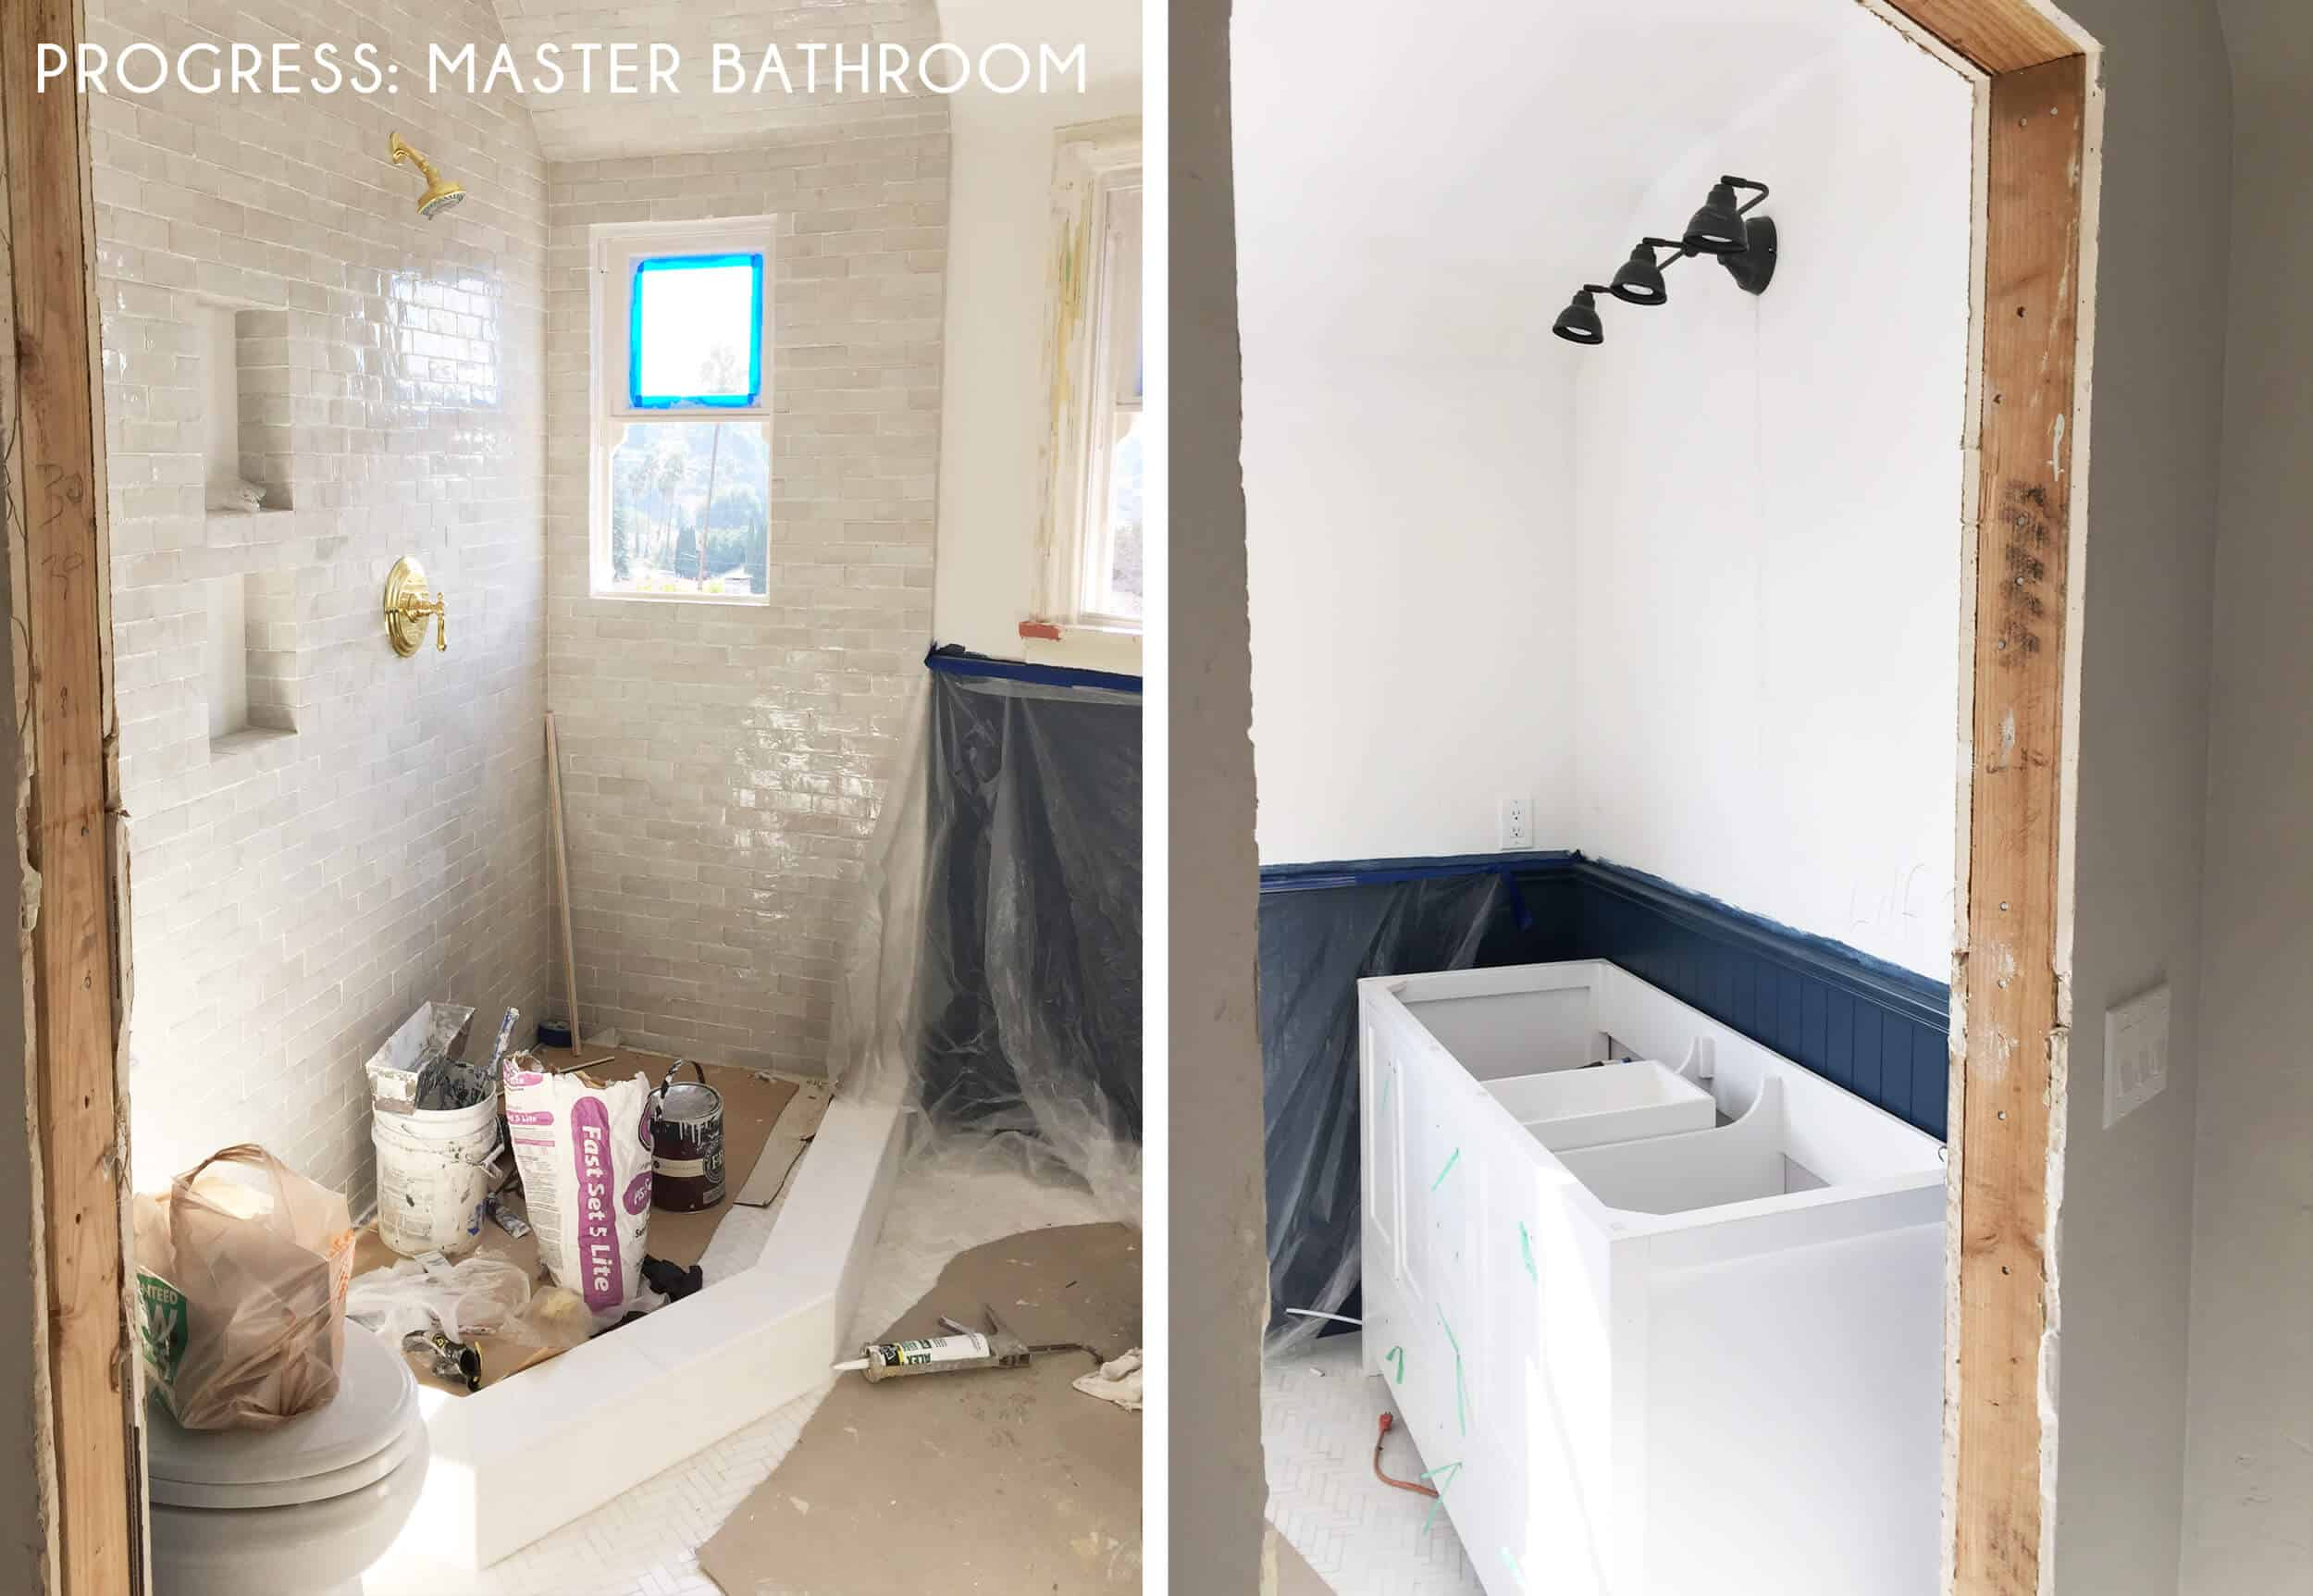 emily-henderson_waverly_progress_master-bathroom_side-by-side_2